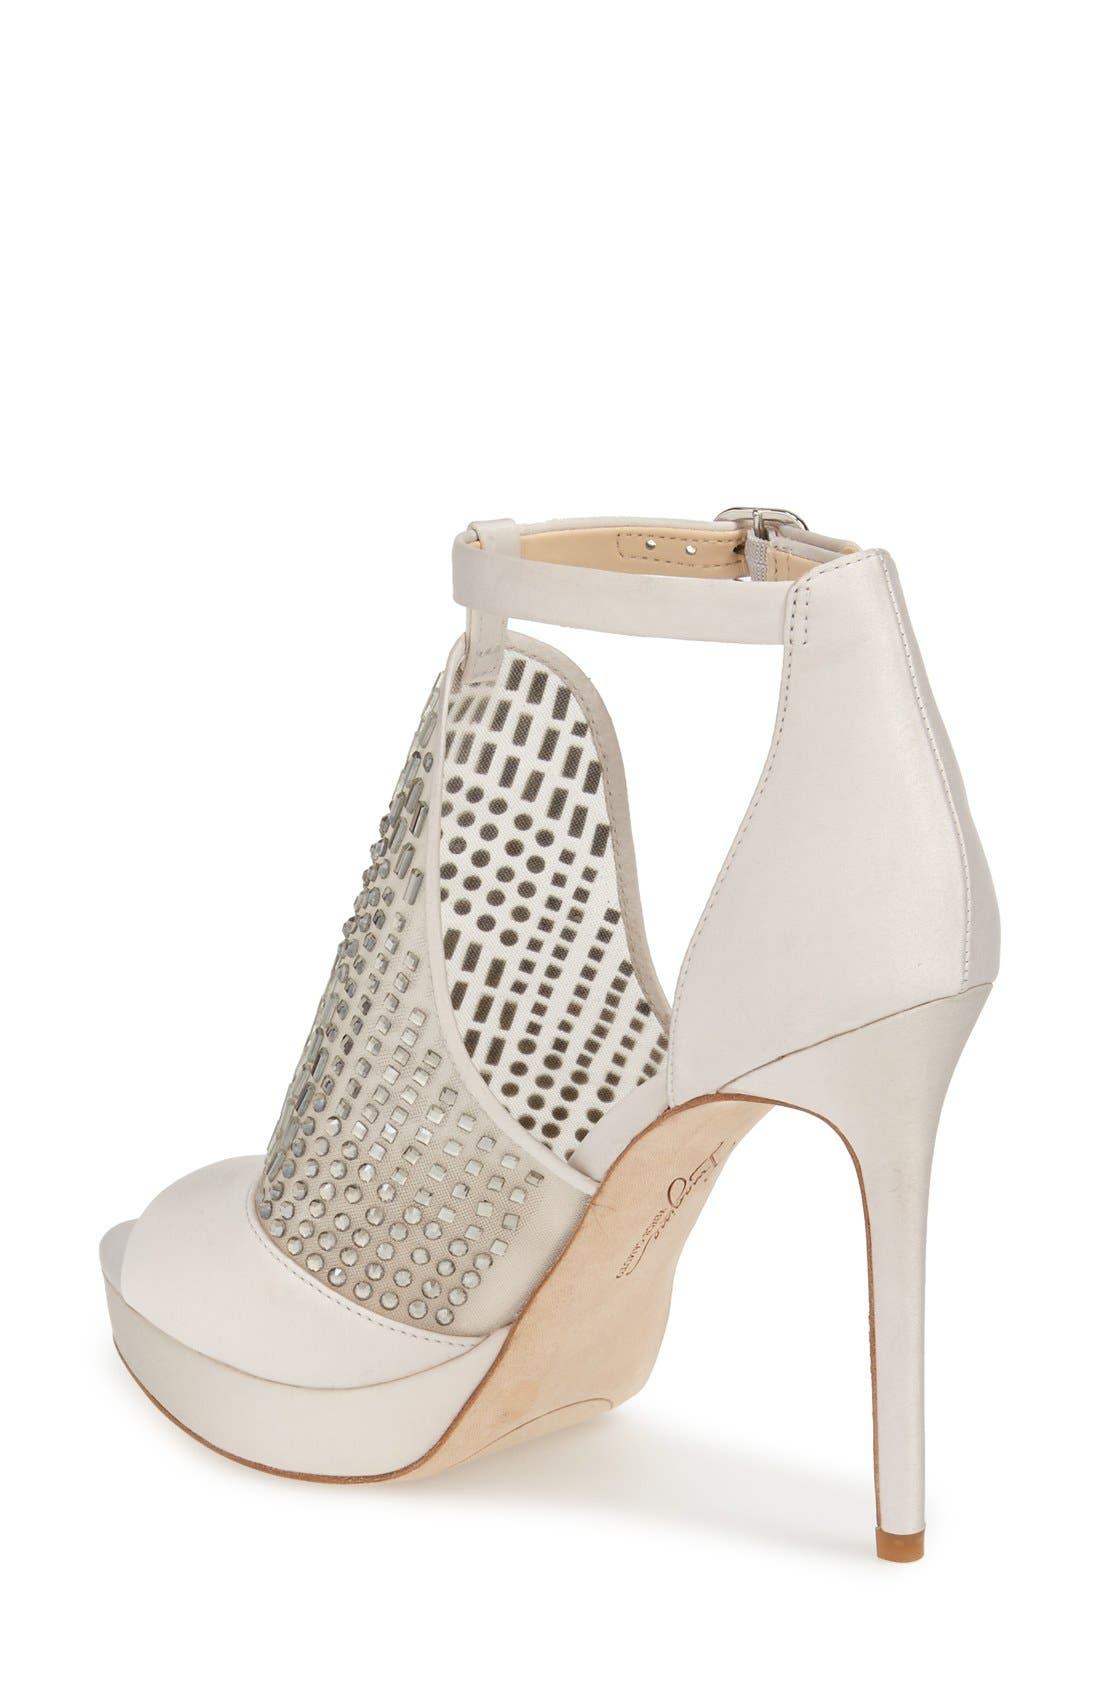 'Keir' T-Strap Platform Sandal,                             Alternate thumbnail 3, color,                             050